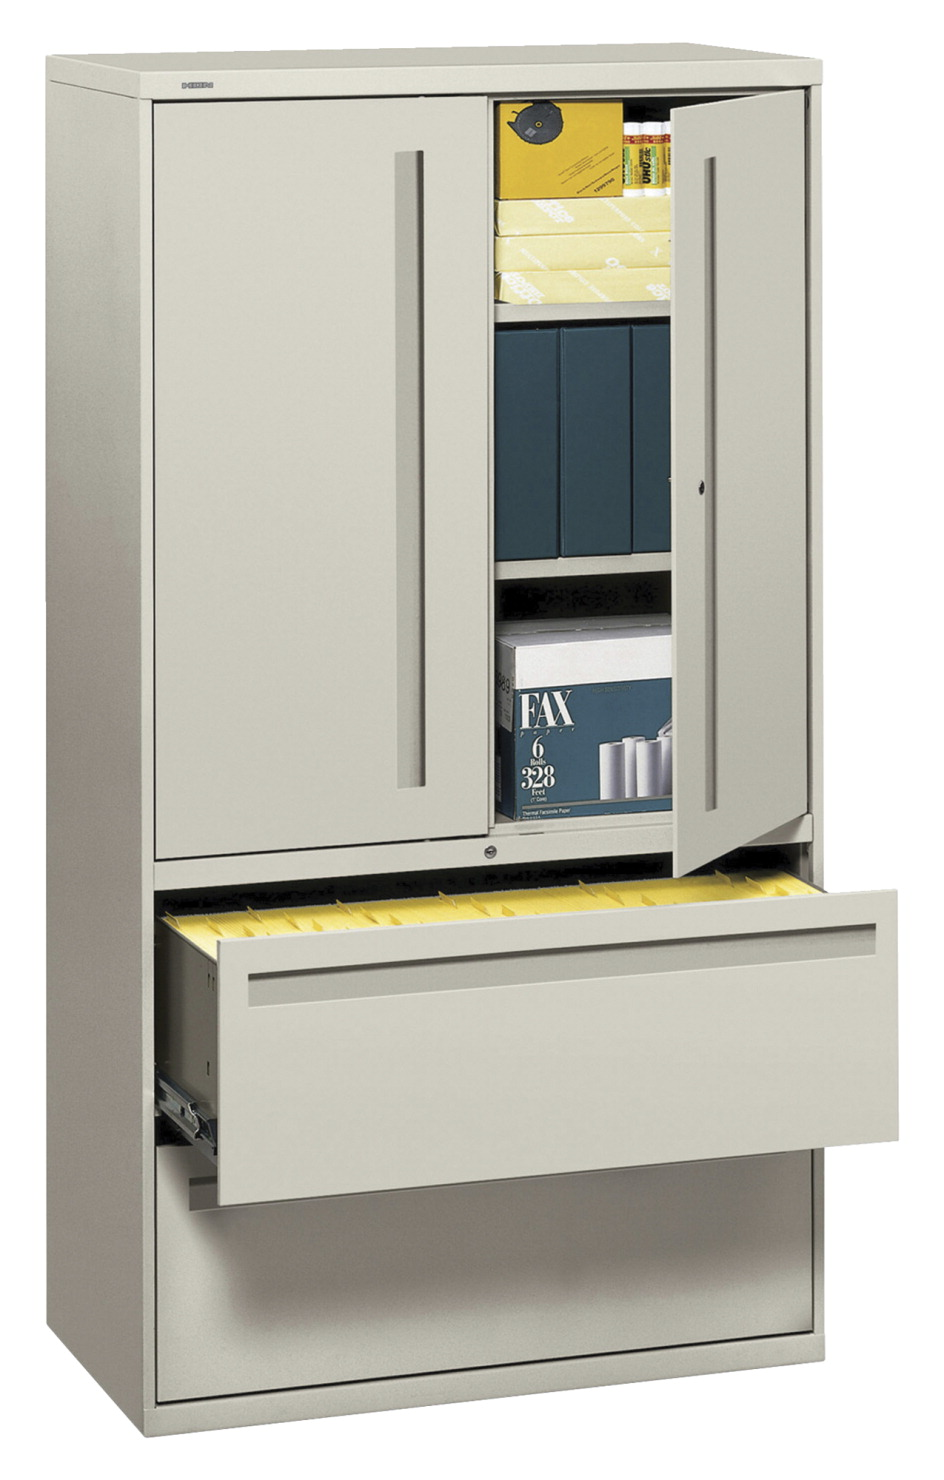 HON 455 Lateral File Cabinet, Gray, 455 W x 455-455/45 D x 45 H in